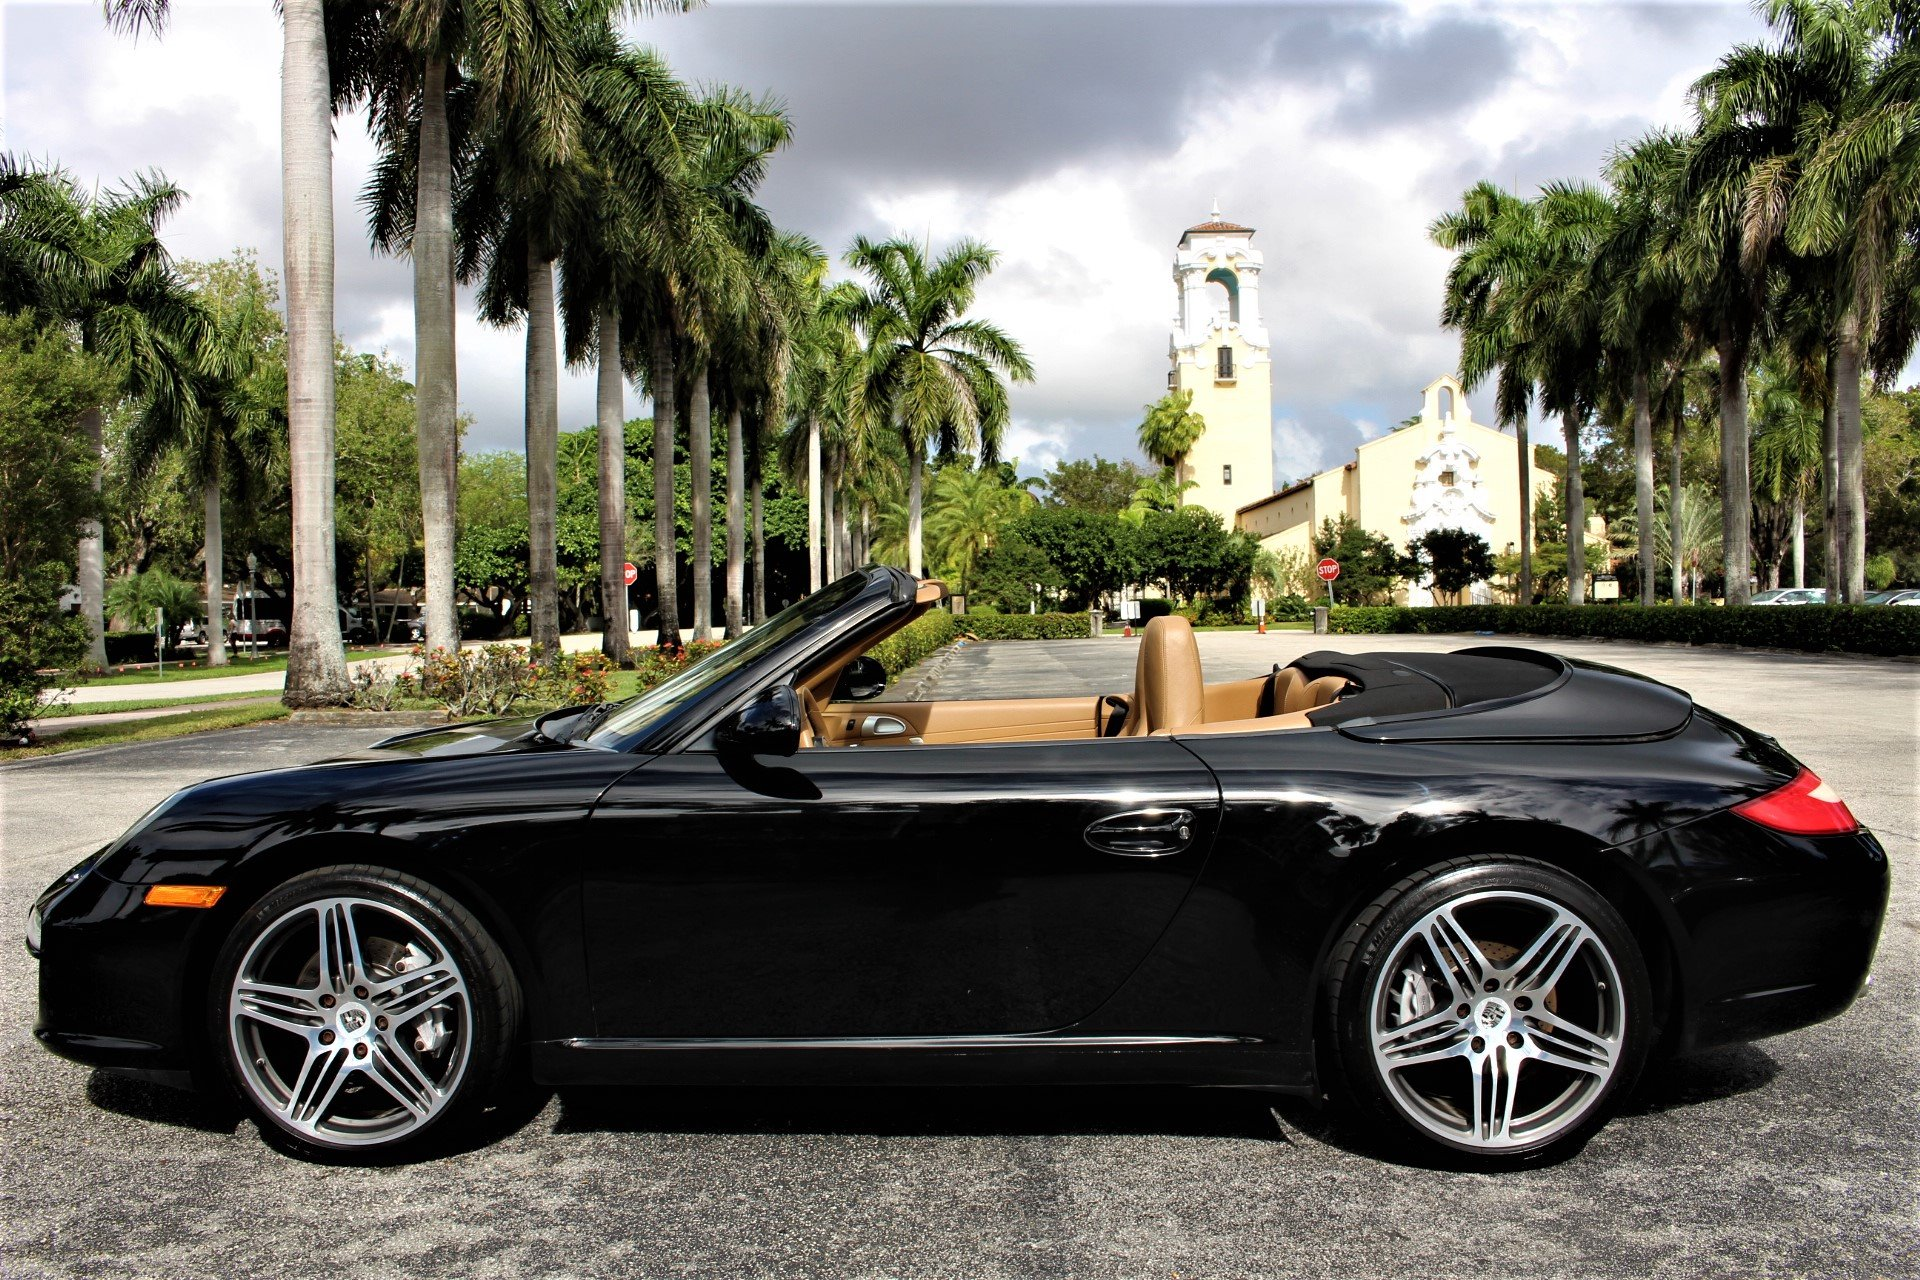 Used 2009 Porsche 911 Carrera for sale Sold at The Gables Sports Cars in Miami FL 33146 2